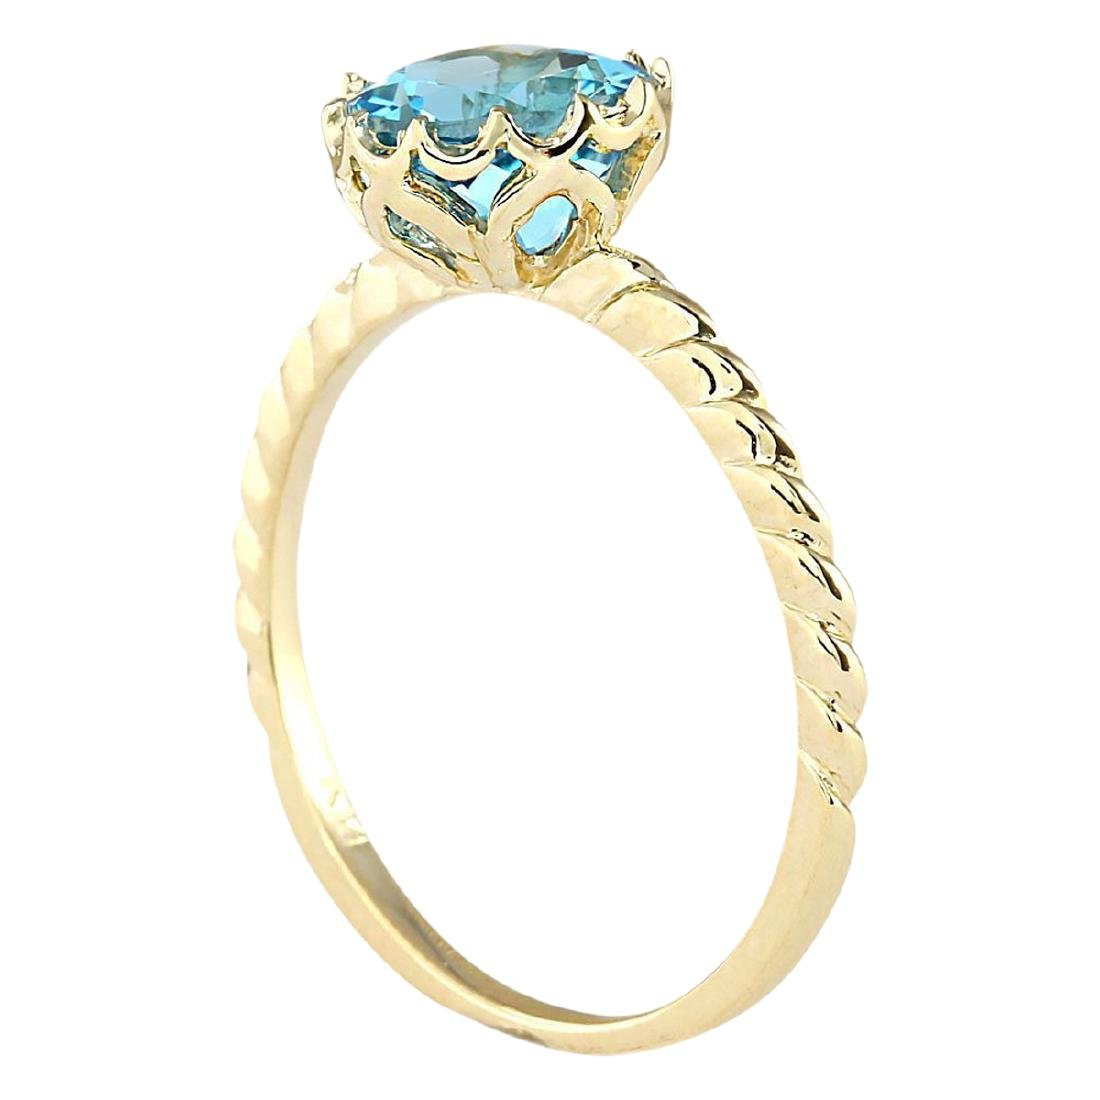 1.50 CTW Natural Blue Topaz Ring In 18K Yellow Gold - 3